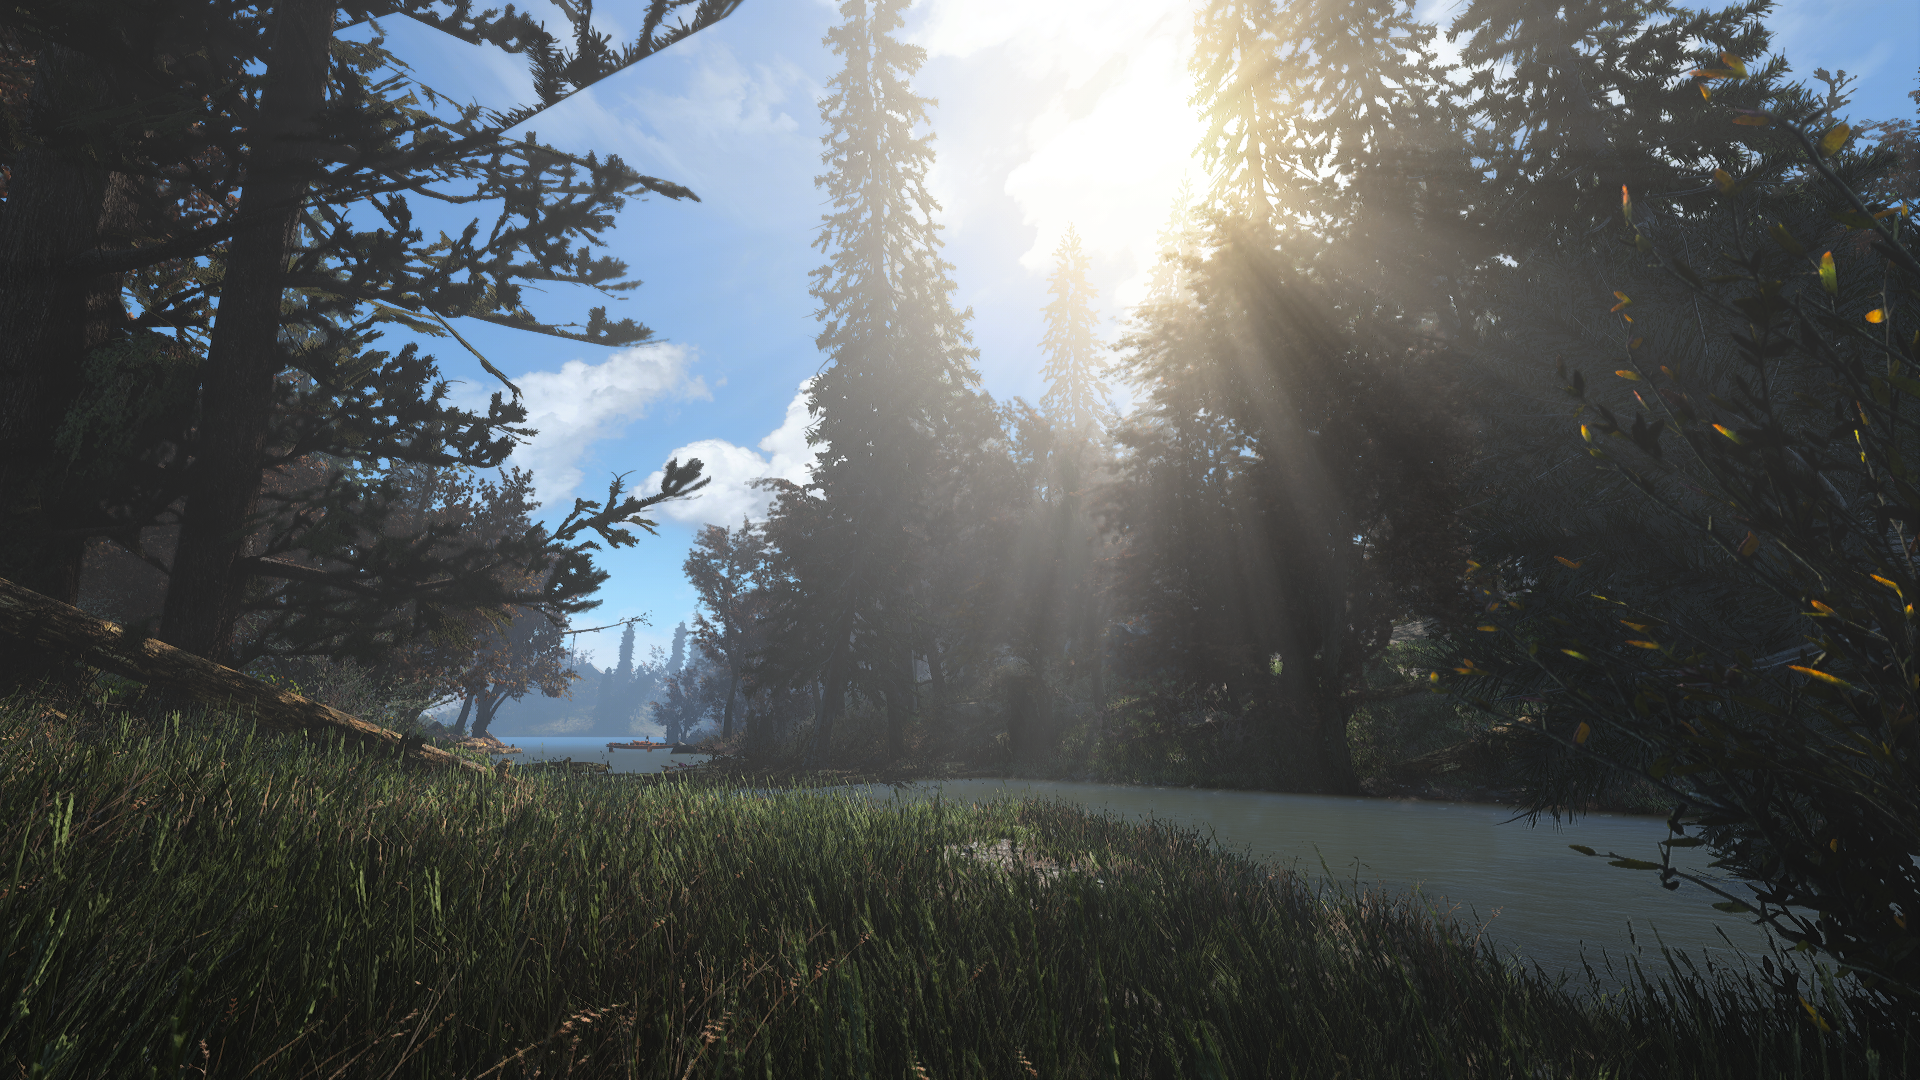 This Fallout 4 graphics mod might be irradiated Boston's